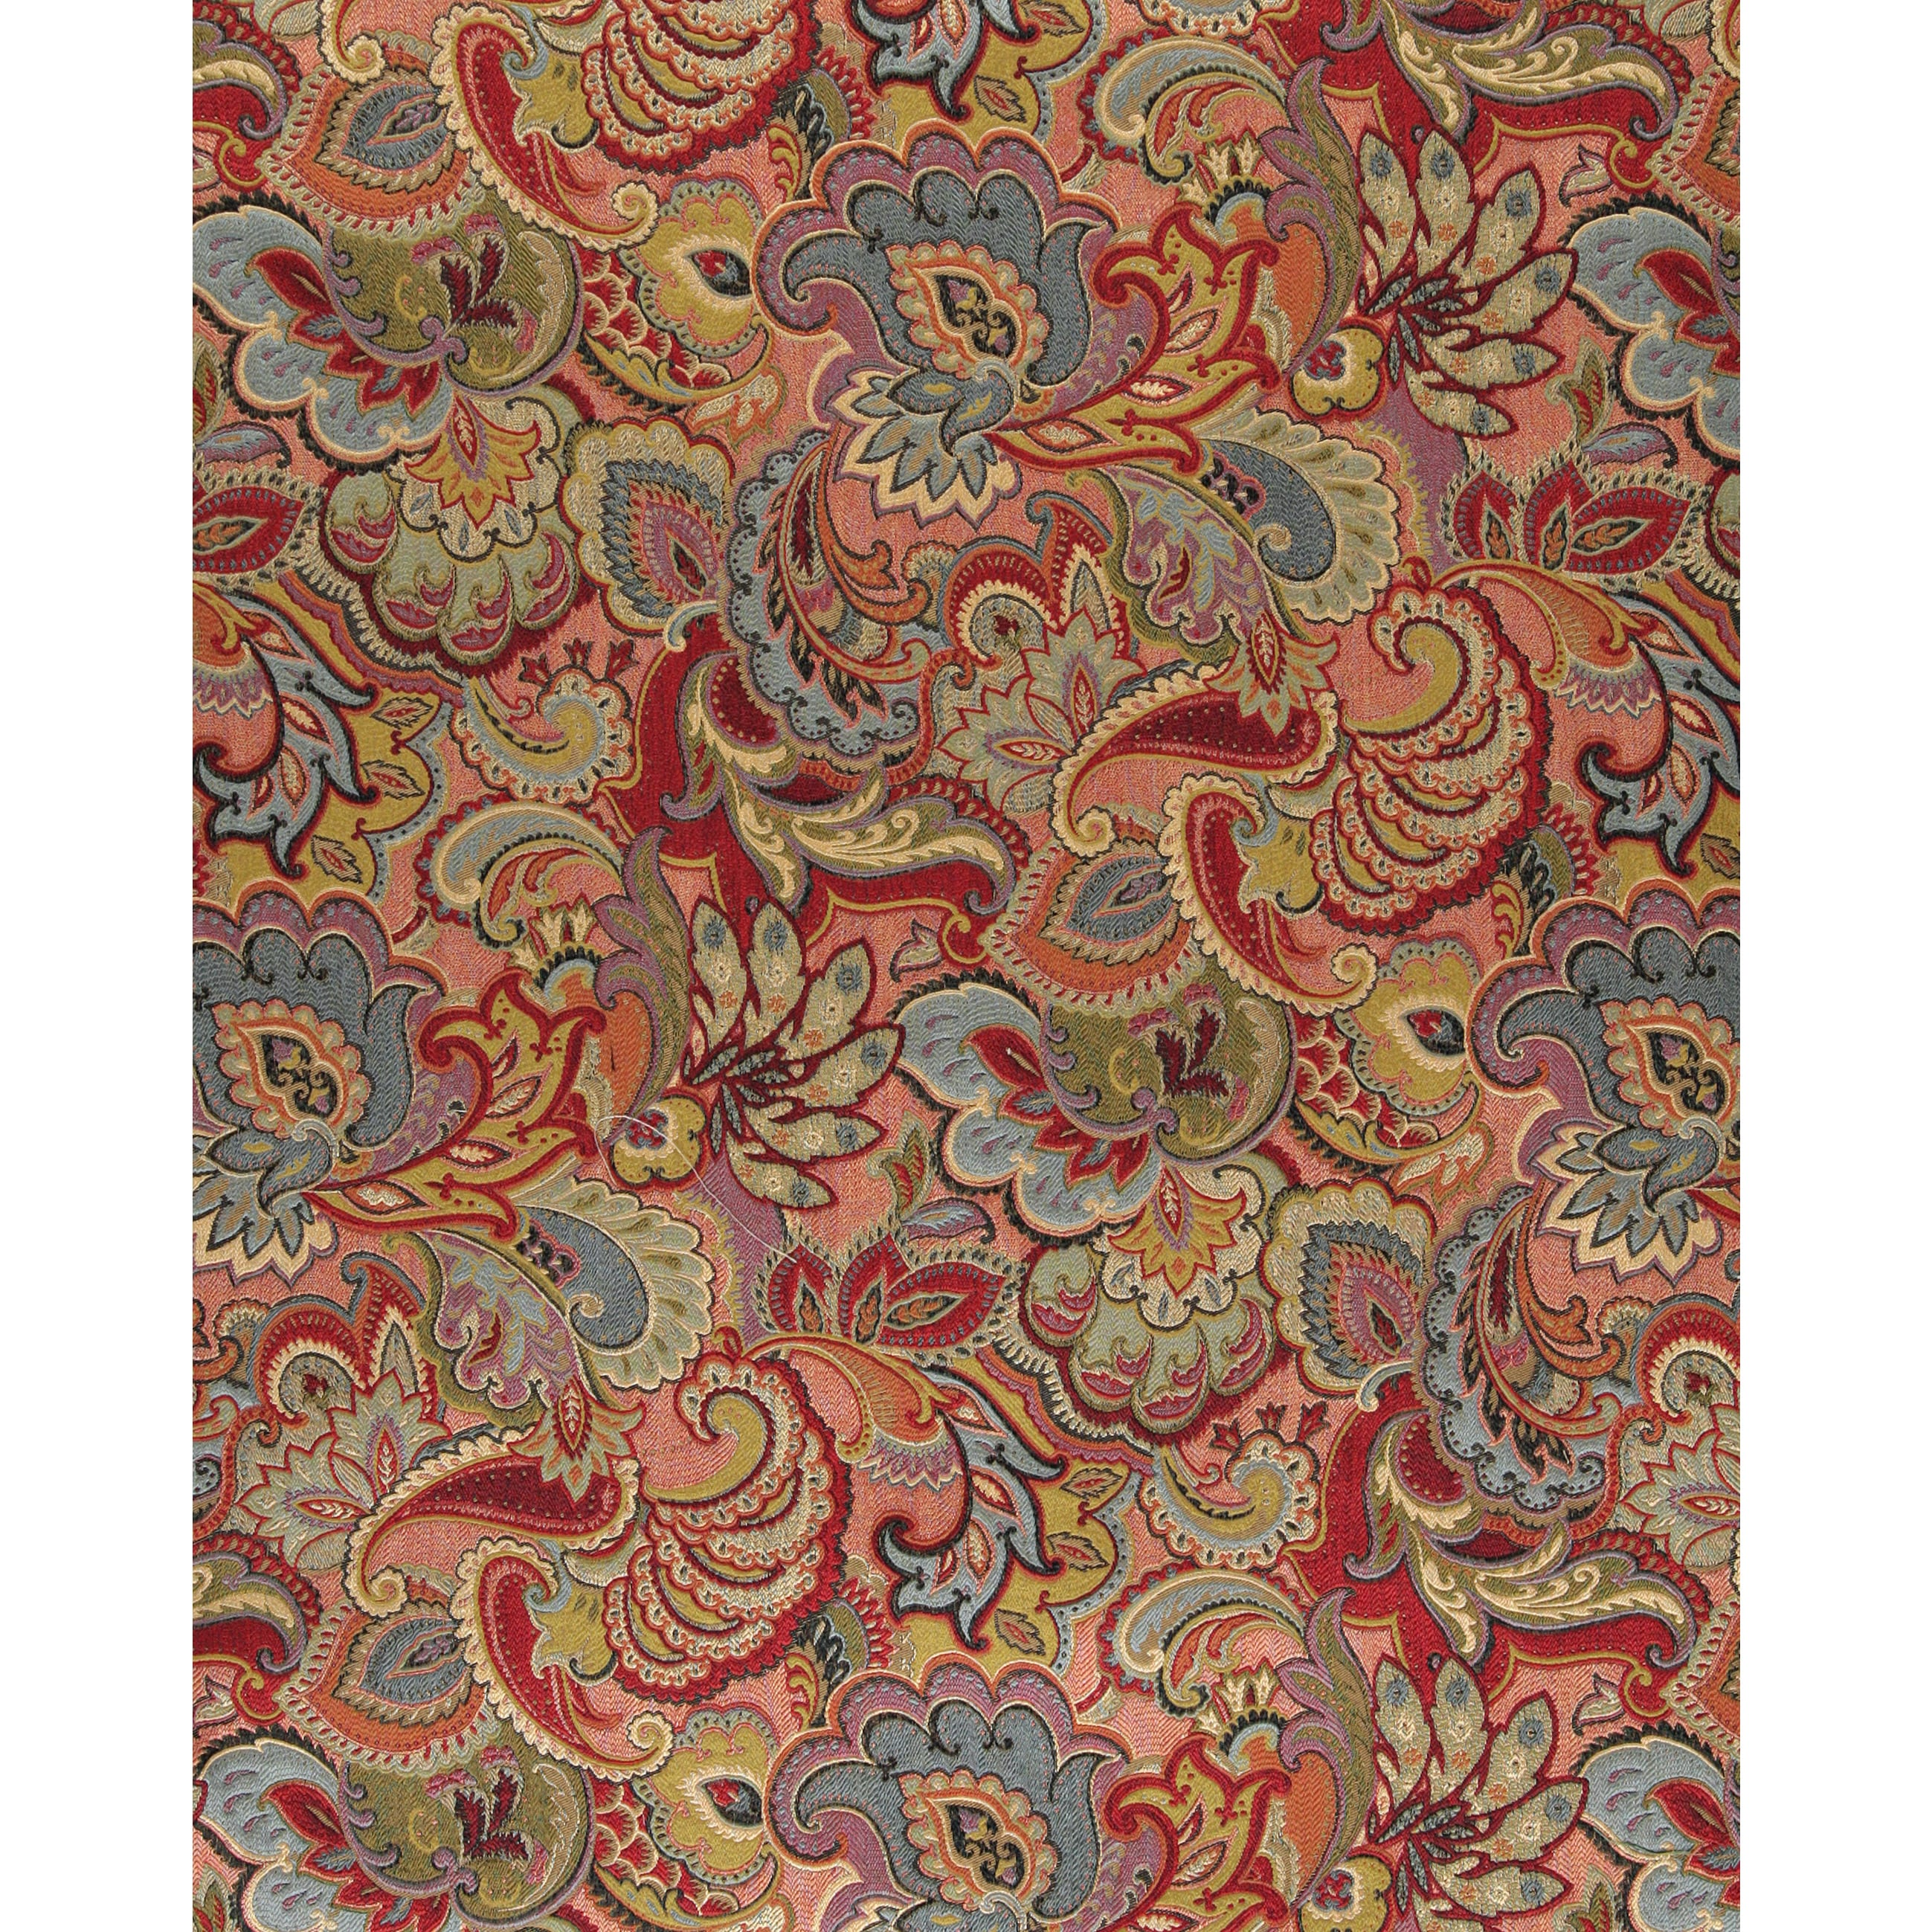 Shop A0025b Green Blue Red Gold Abstract Floral Upholstery Fabric